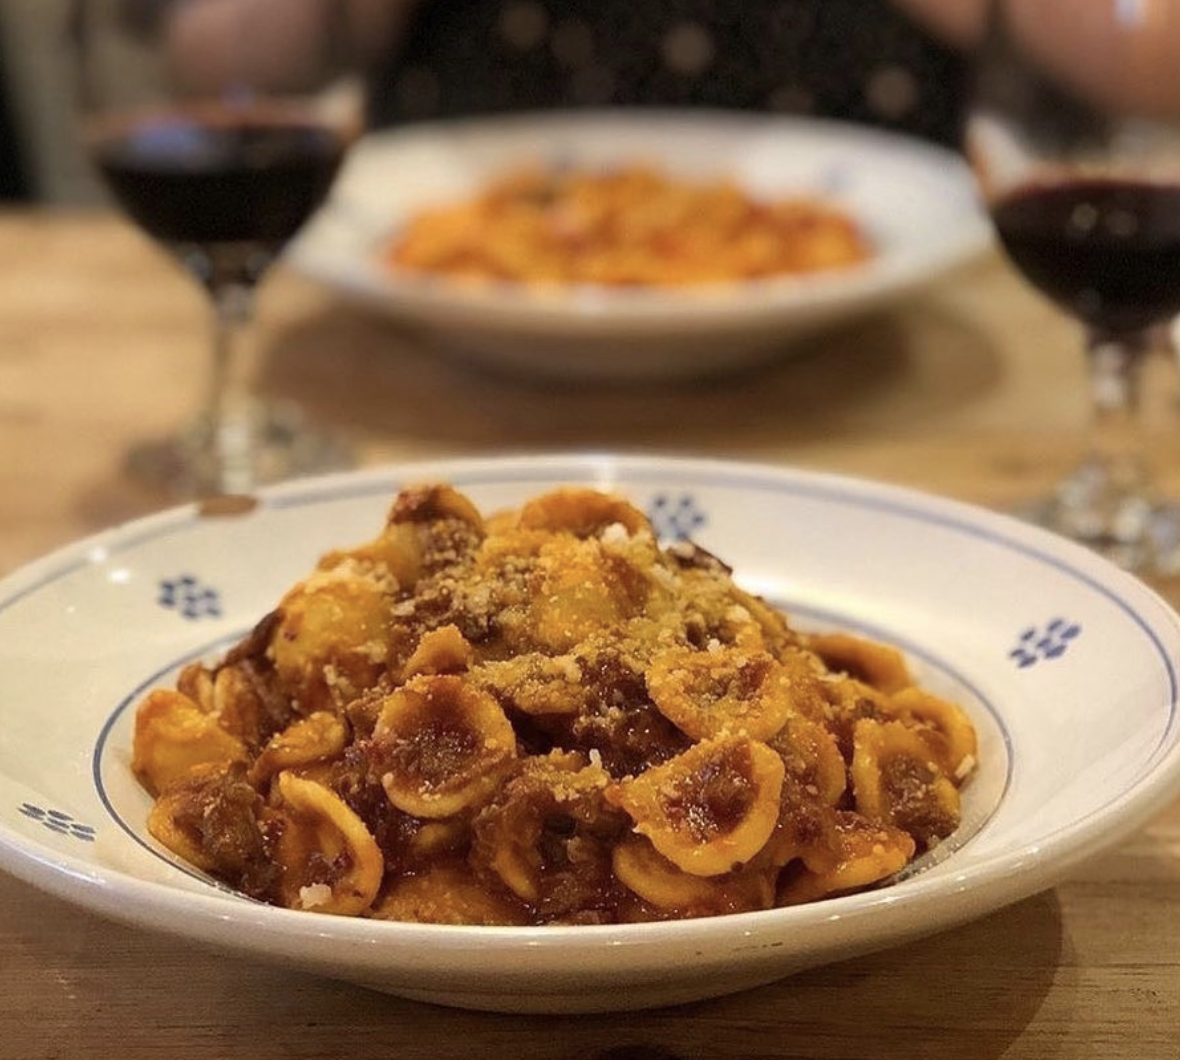 Sugo Pasta Kitchen is reopening its Ancoats restaurant next month, The Manc